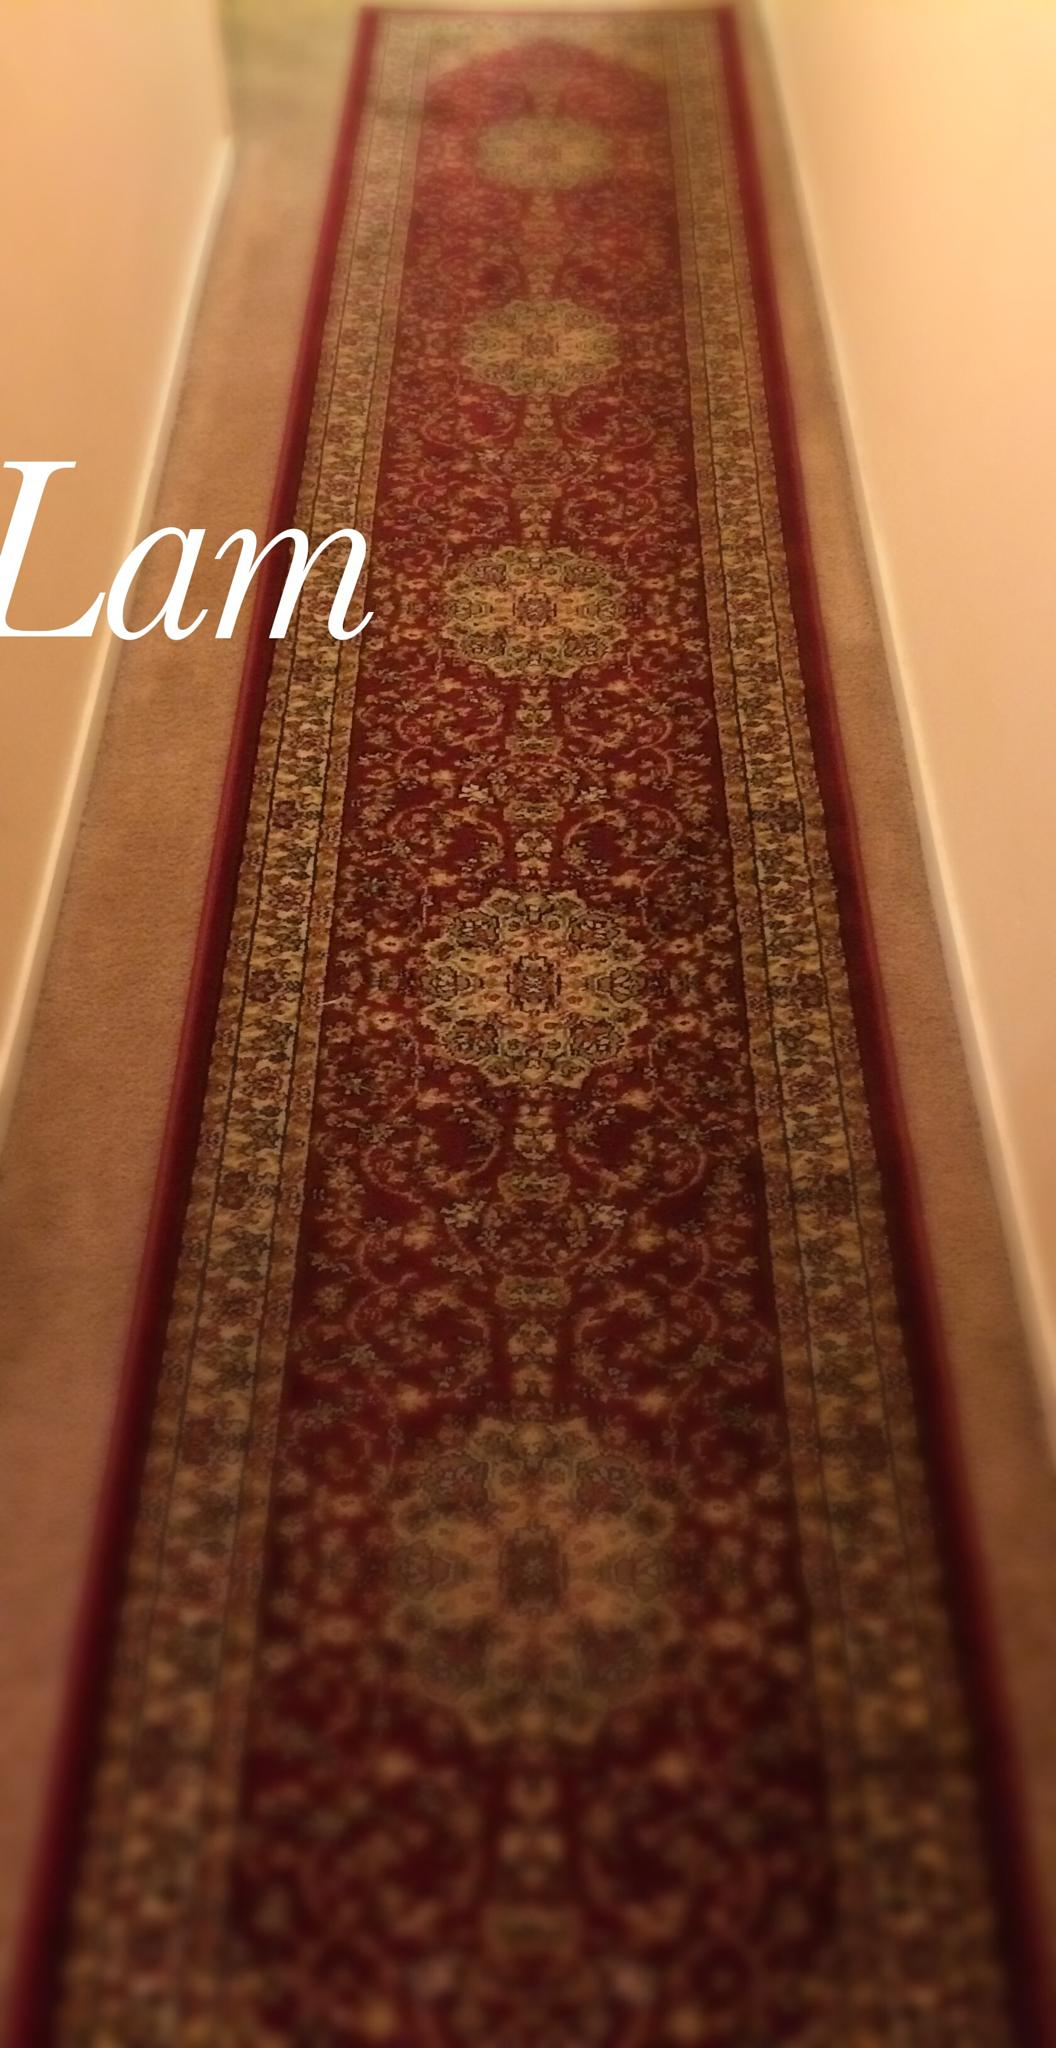 Rug by leam1972